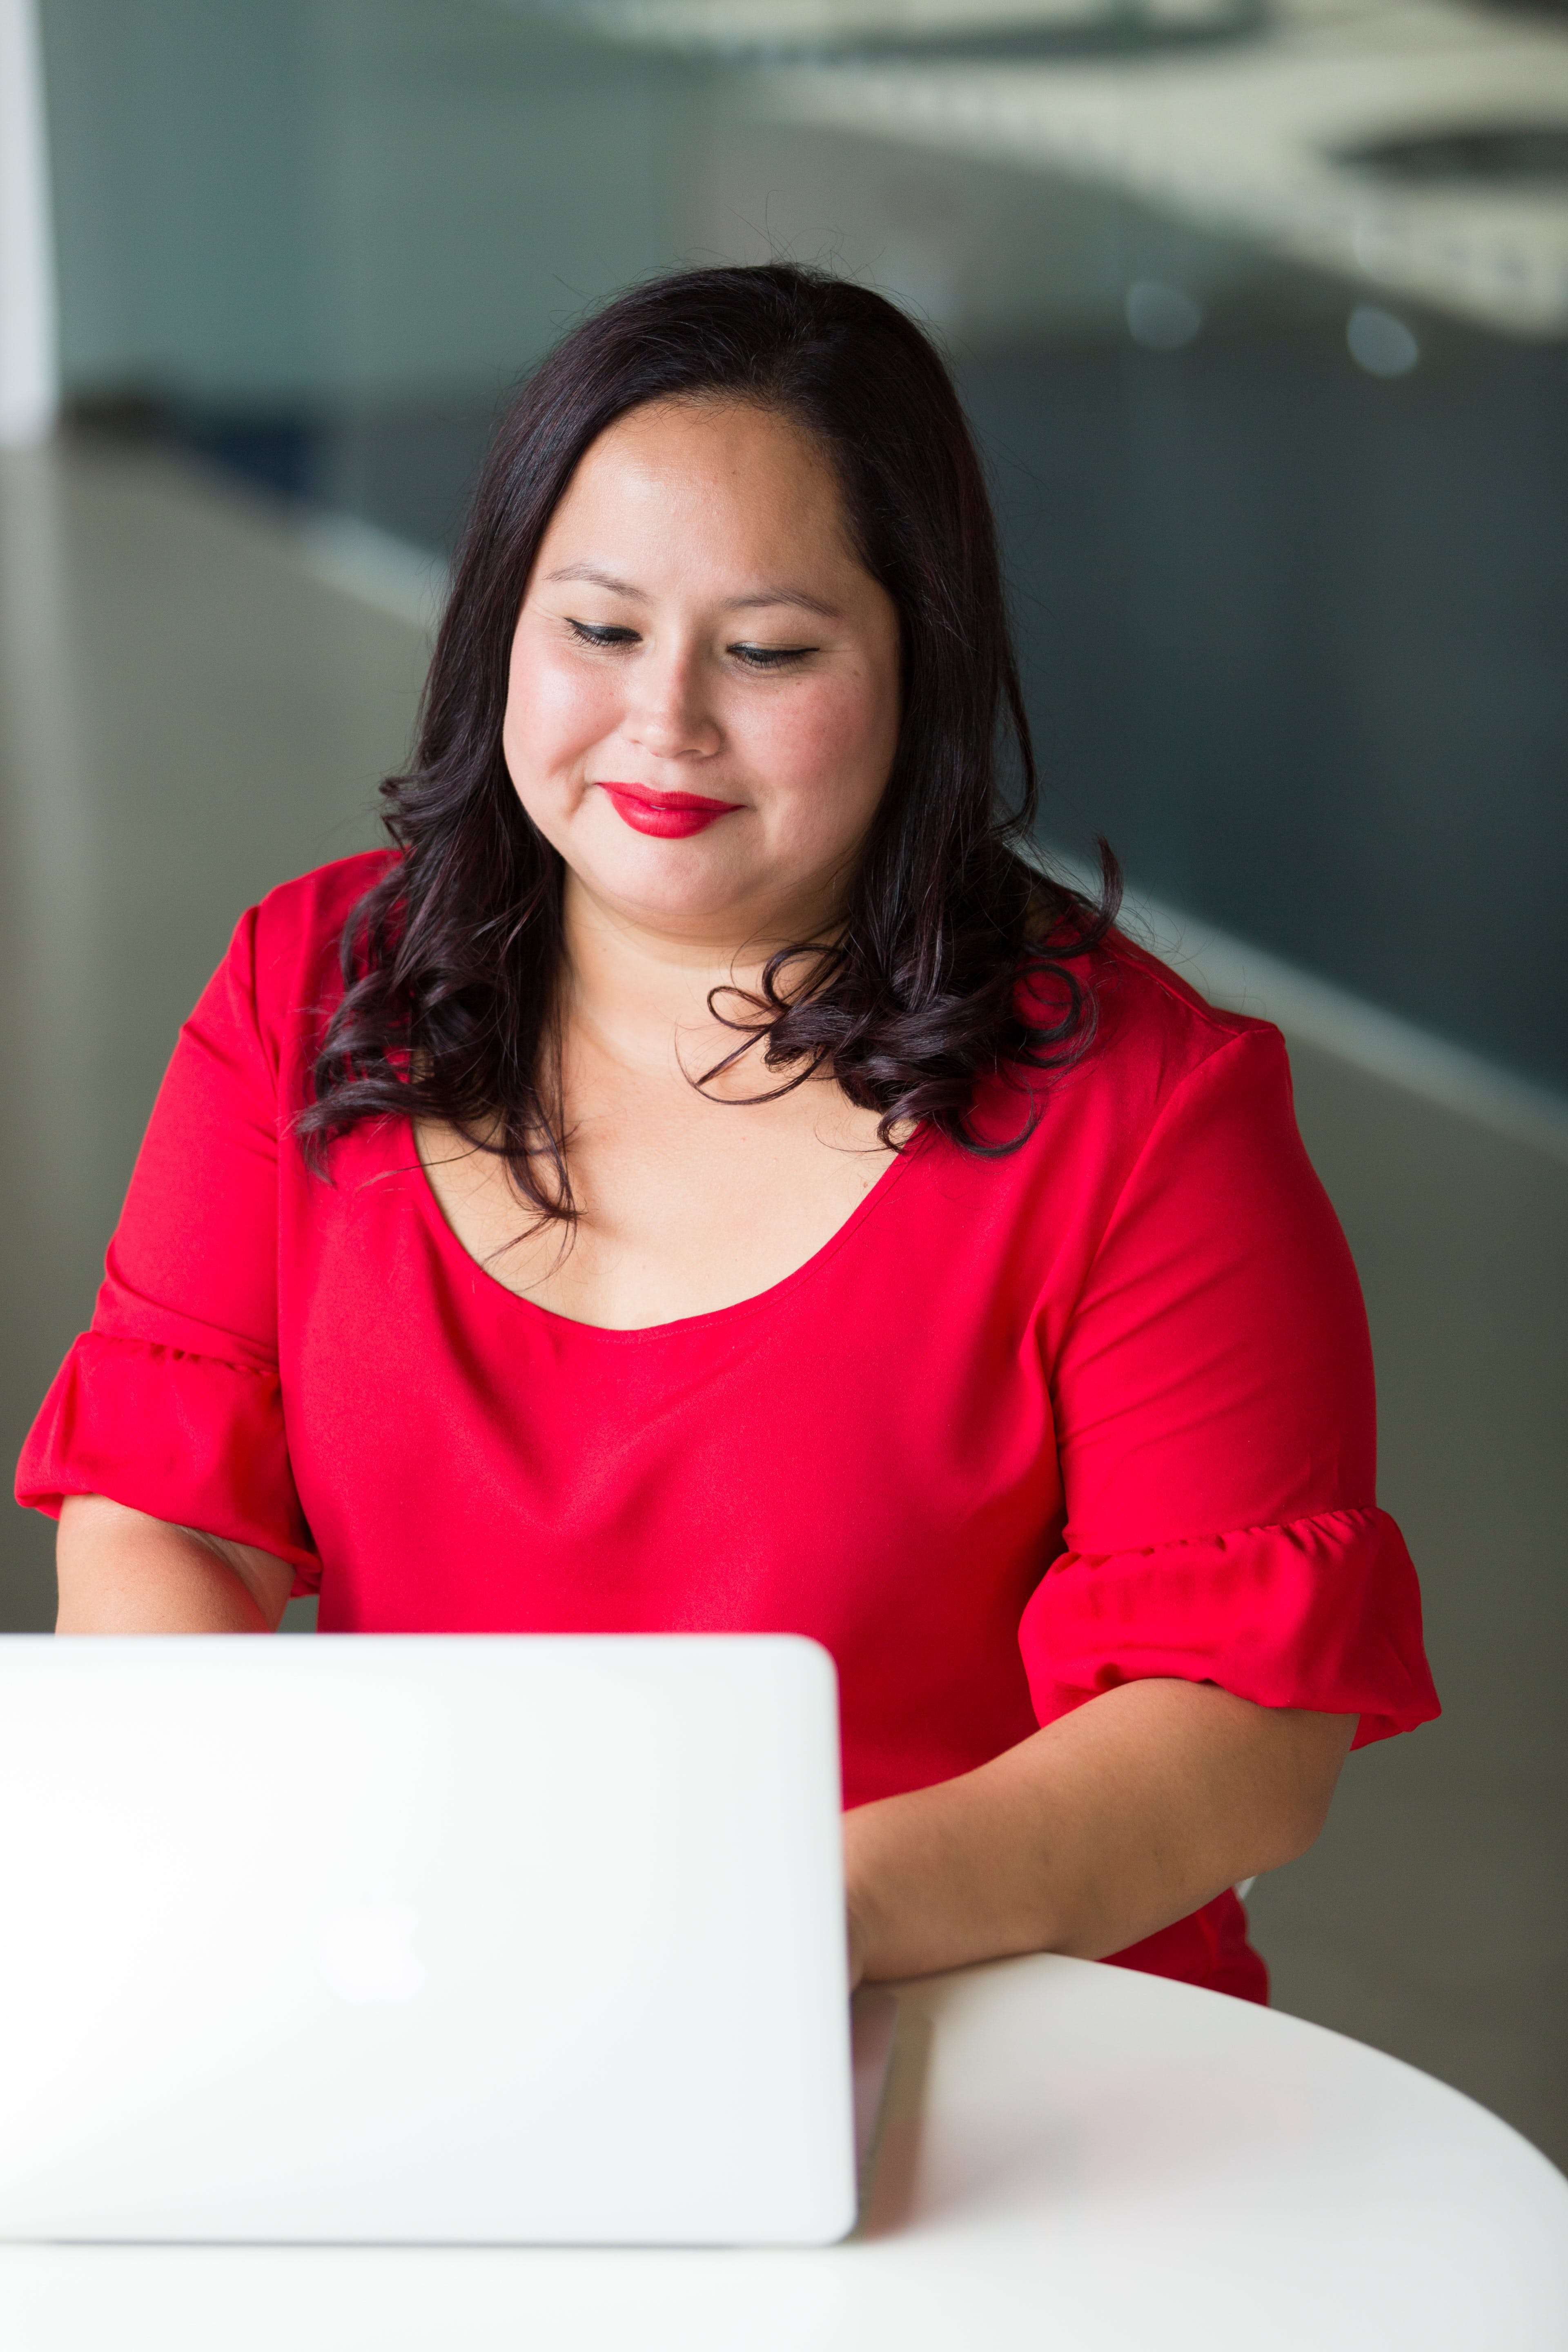 Photography of Woman Using Laptop